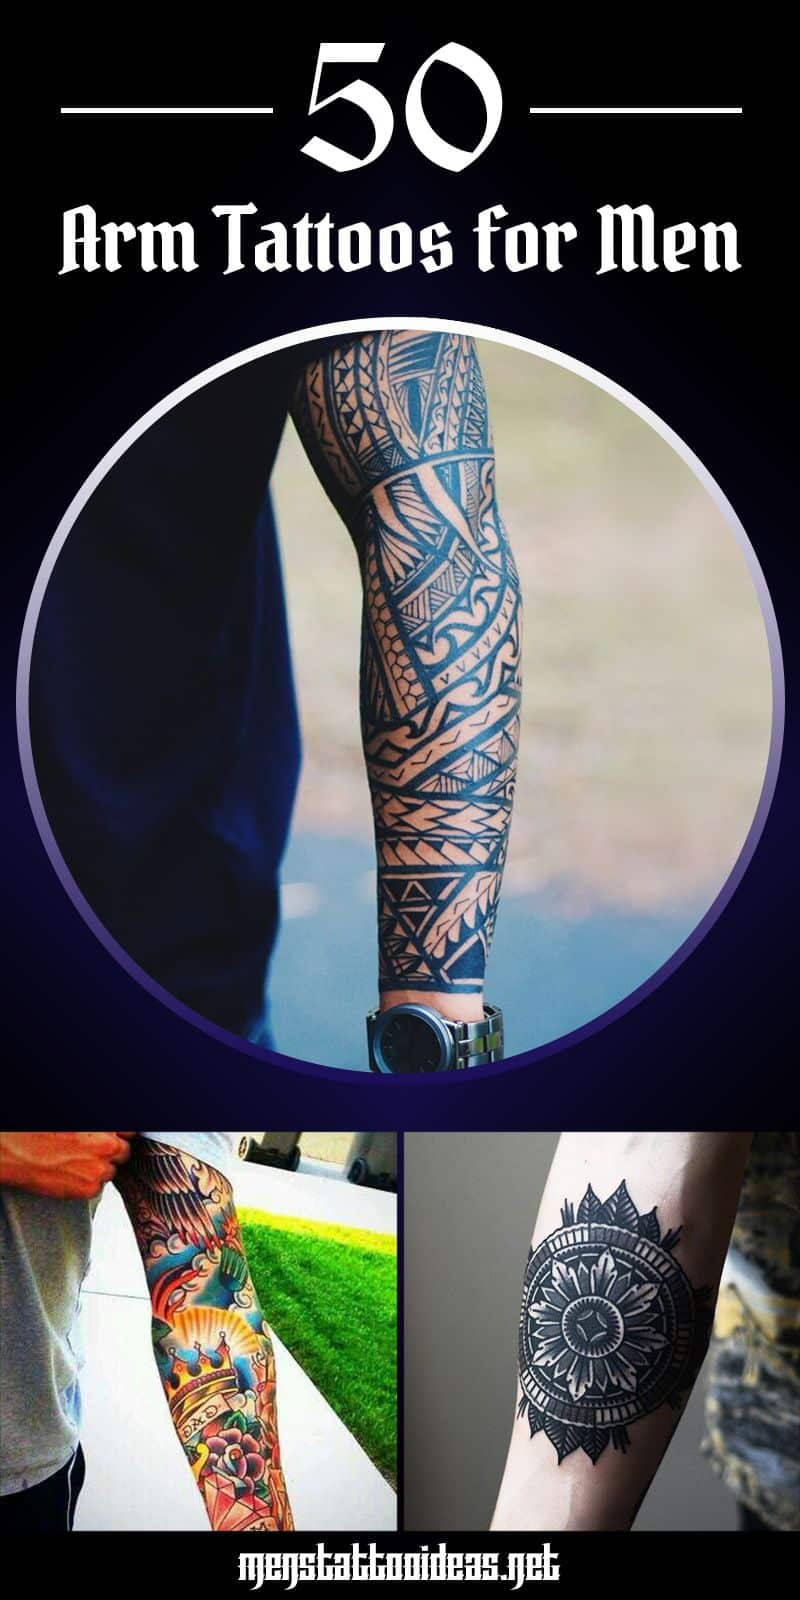 d3b5e1a4f Arm Tattoos For Men - Designs and Ideas for Guys